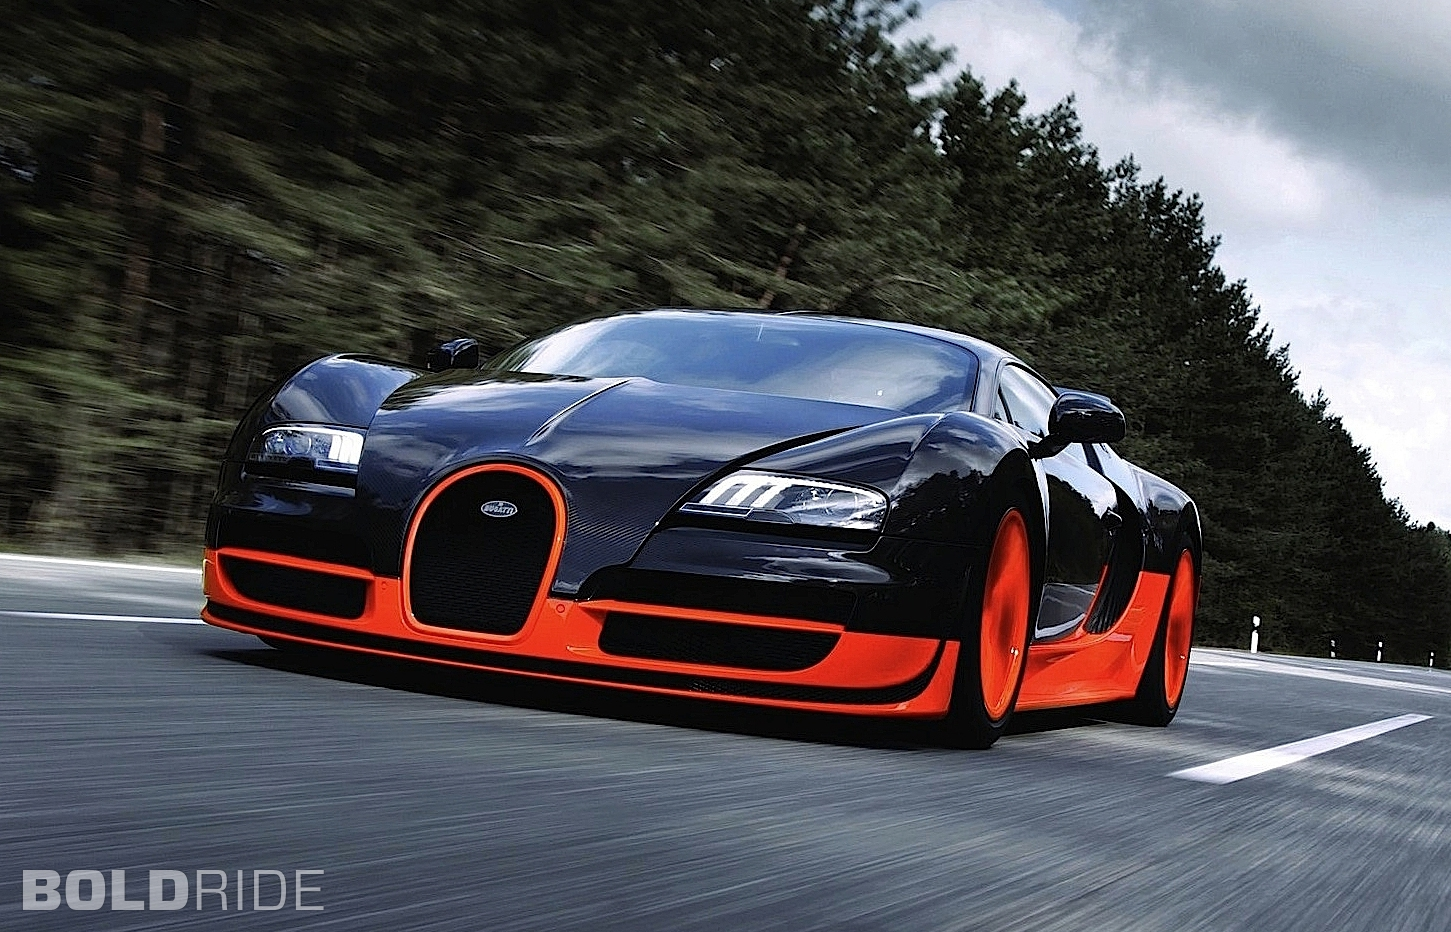 Sports Cars: Fastest Sports Car In The World